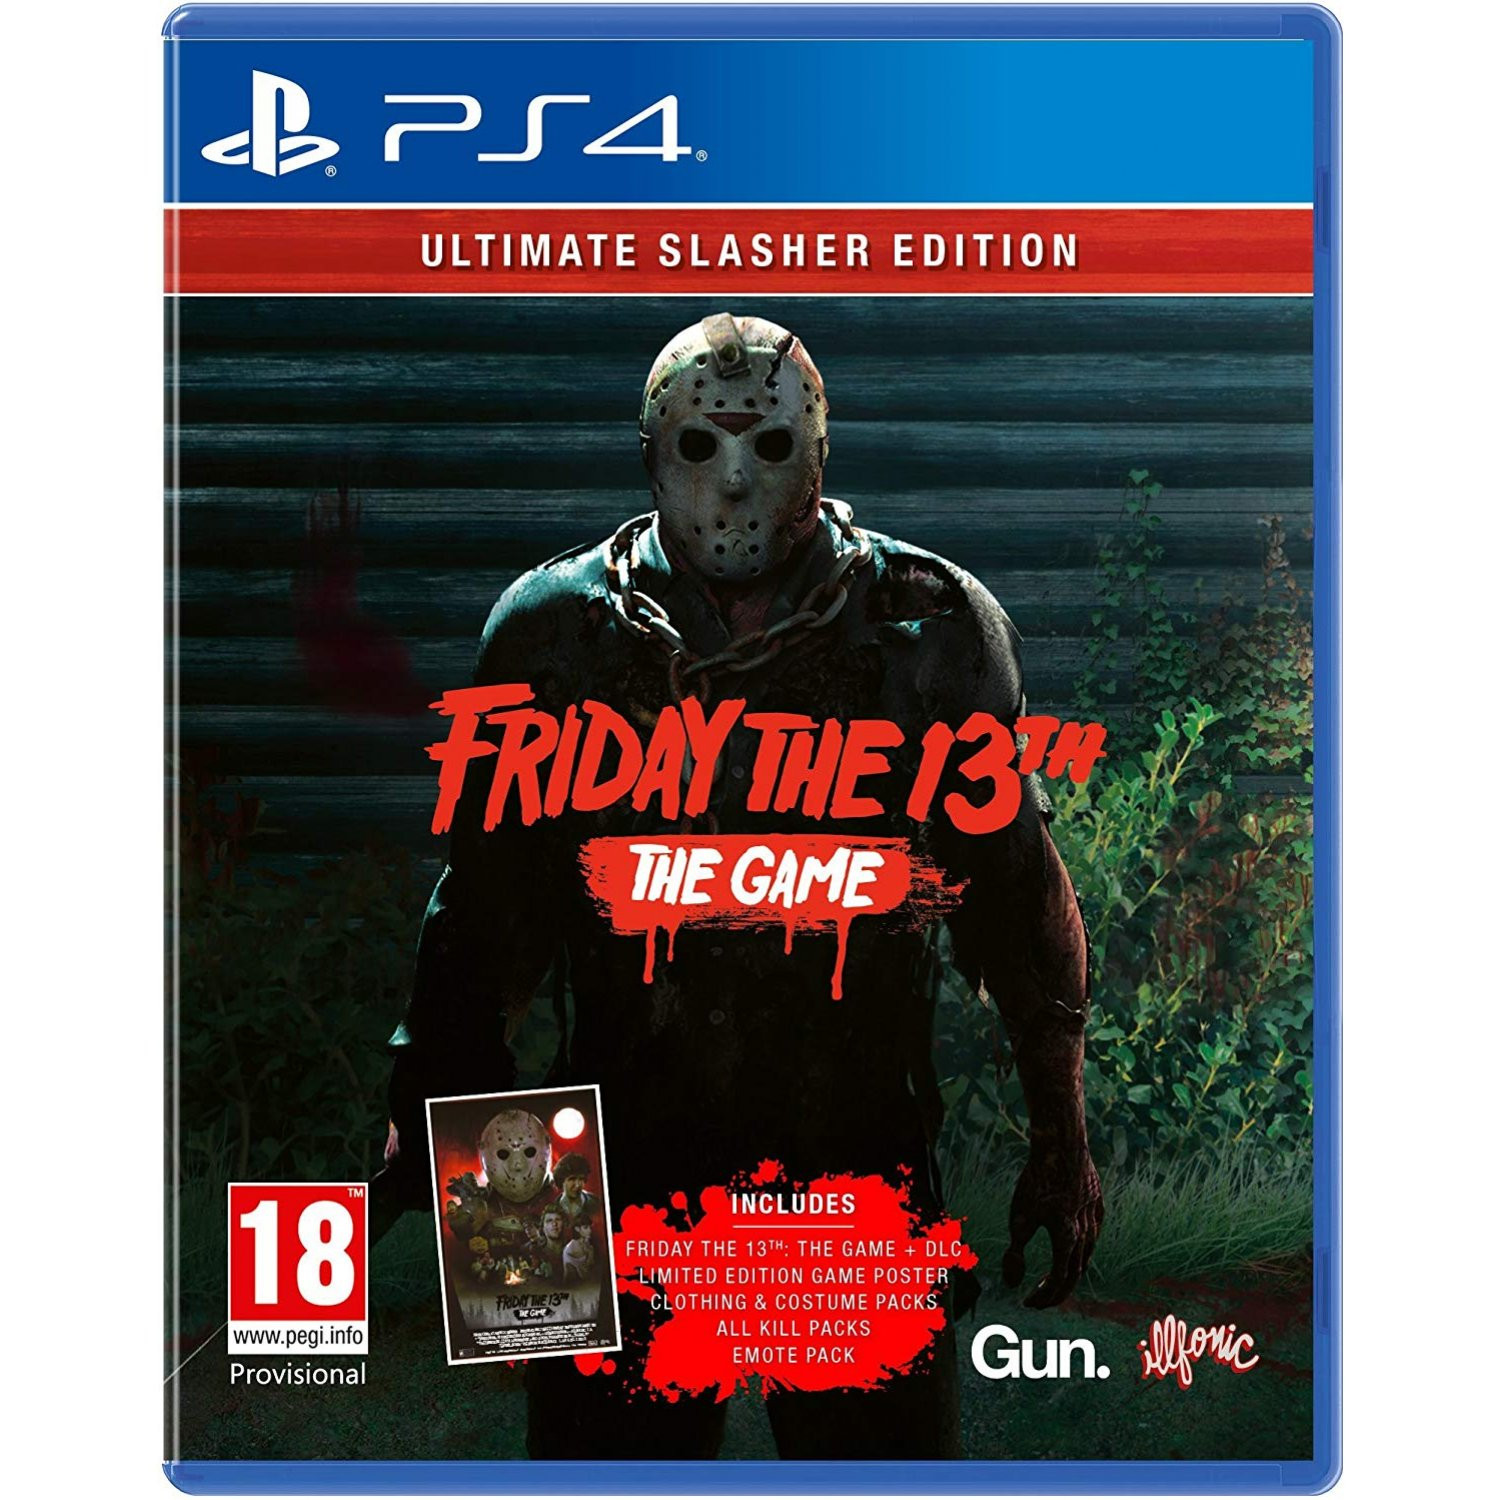 PS4 Friday the 13th - Ultimate Slasher Edition